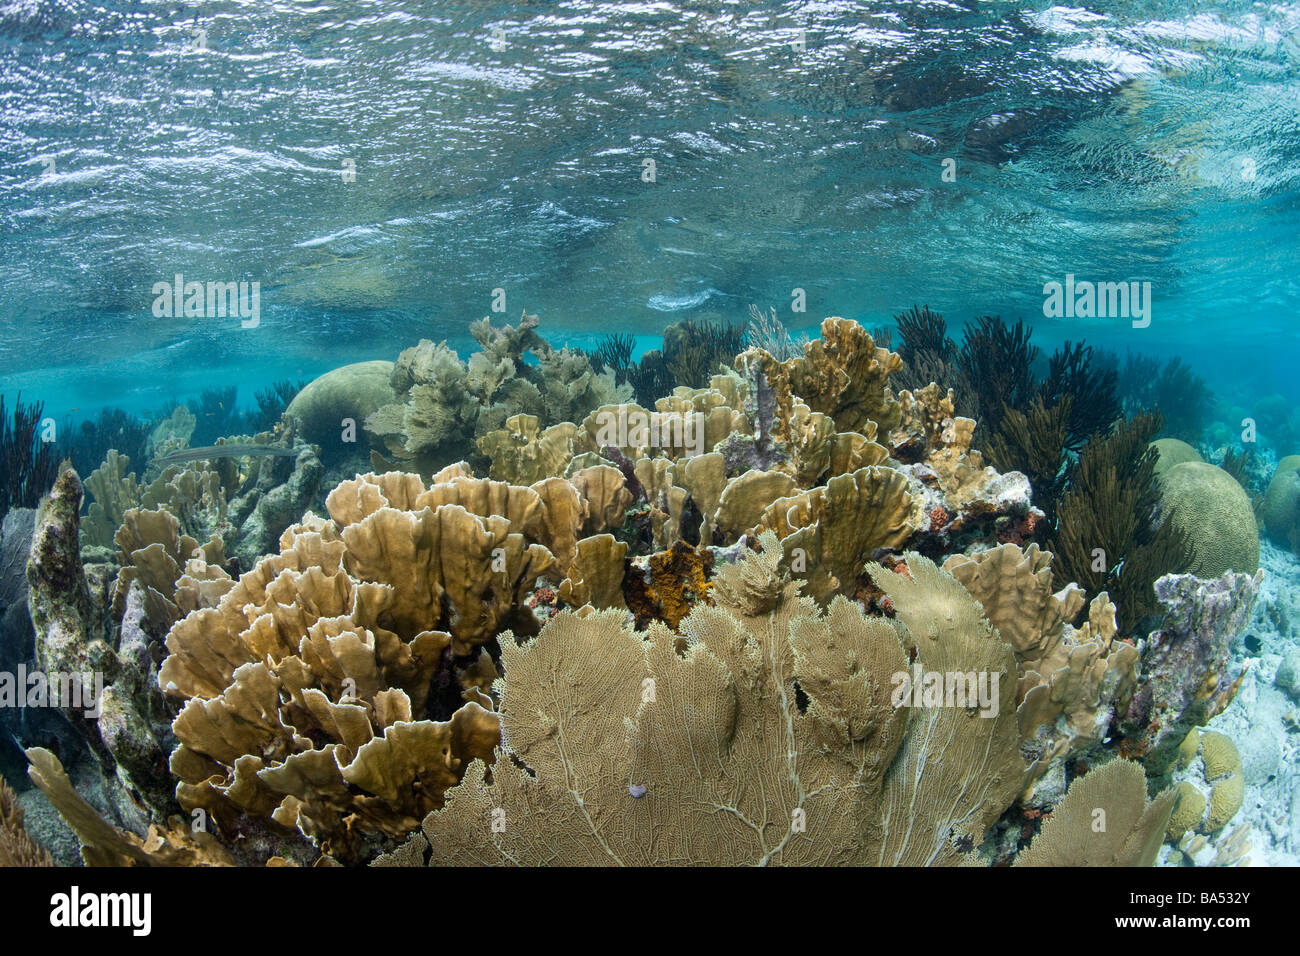 View of a reef top in the shallow waters near Klein Bonaire. - Stock Image